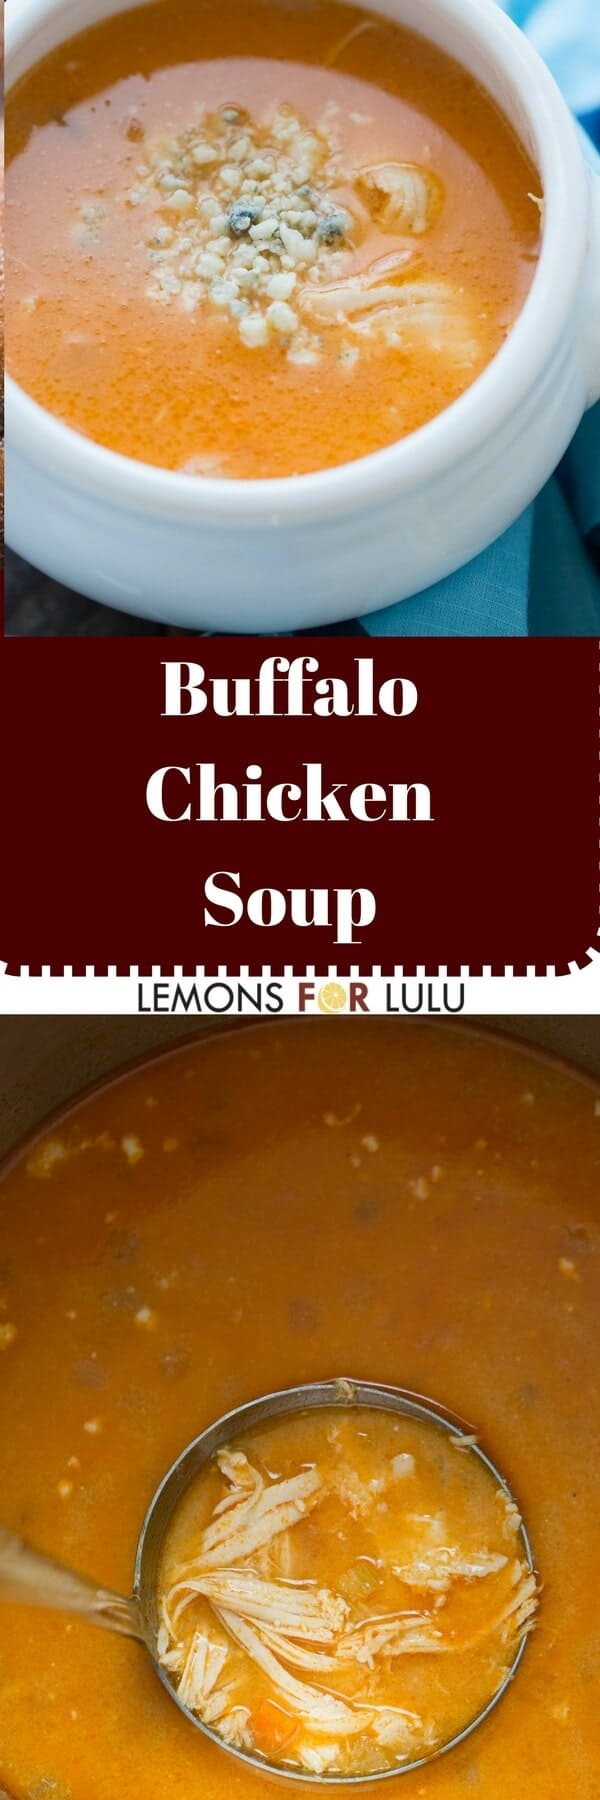 This Buffalo chicken soup combines two favorites; creamy chicken soup and Buffalo wing sauce. it is the best comfort food to feed your family!